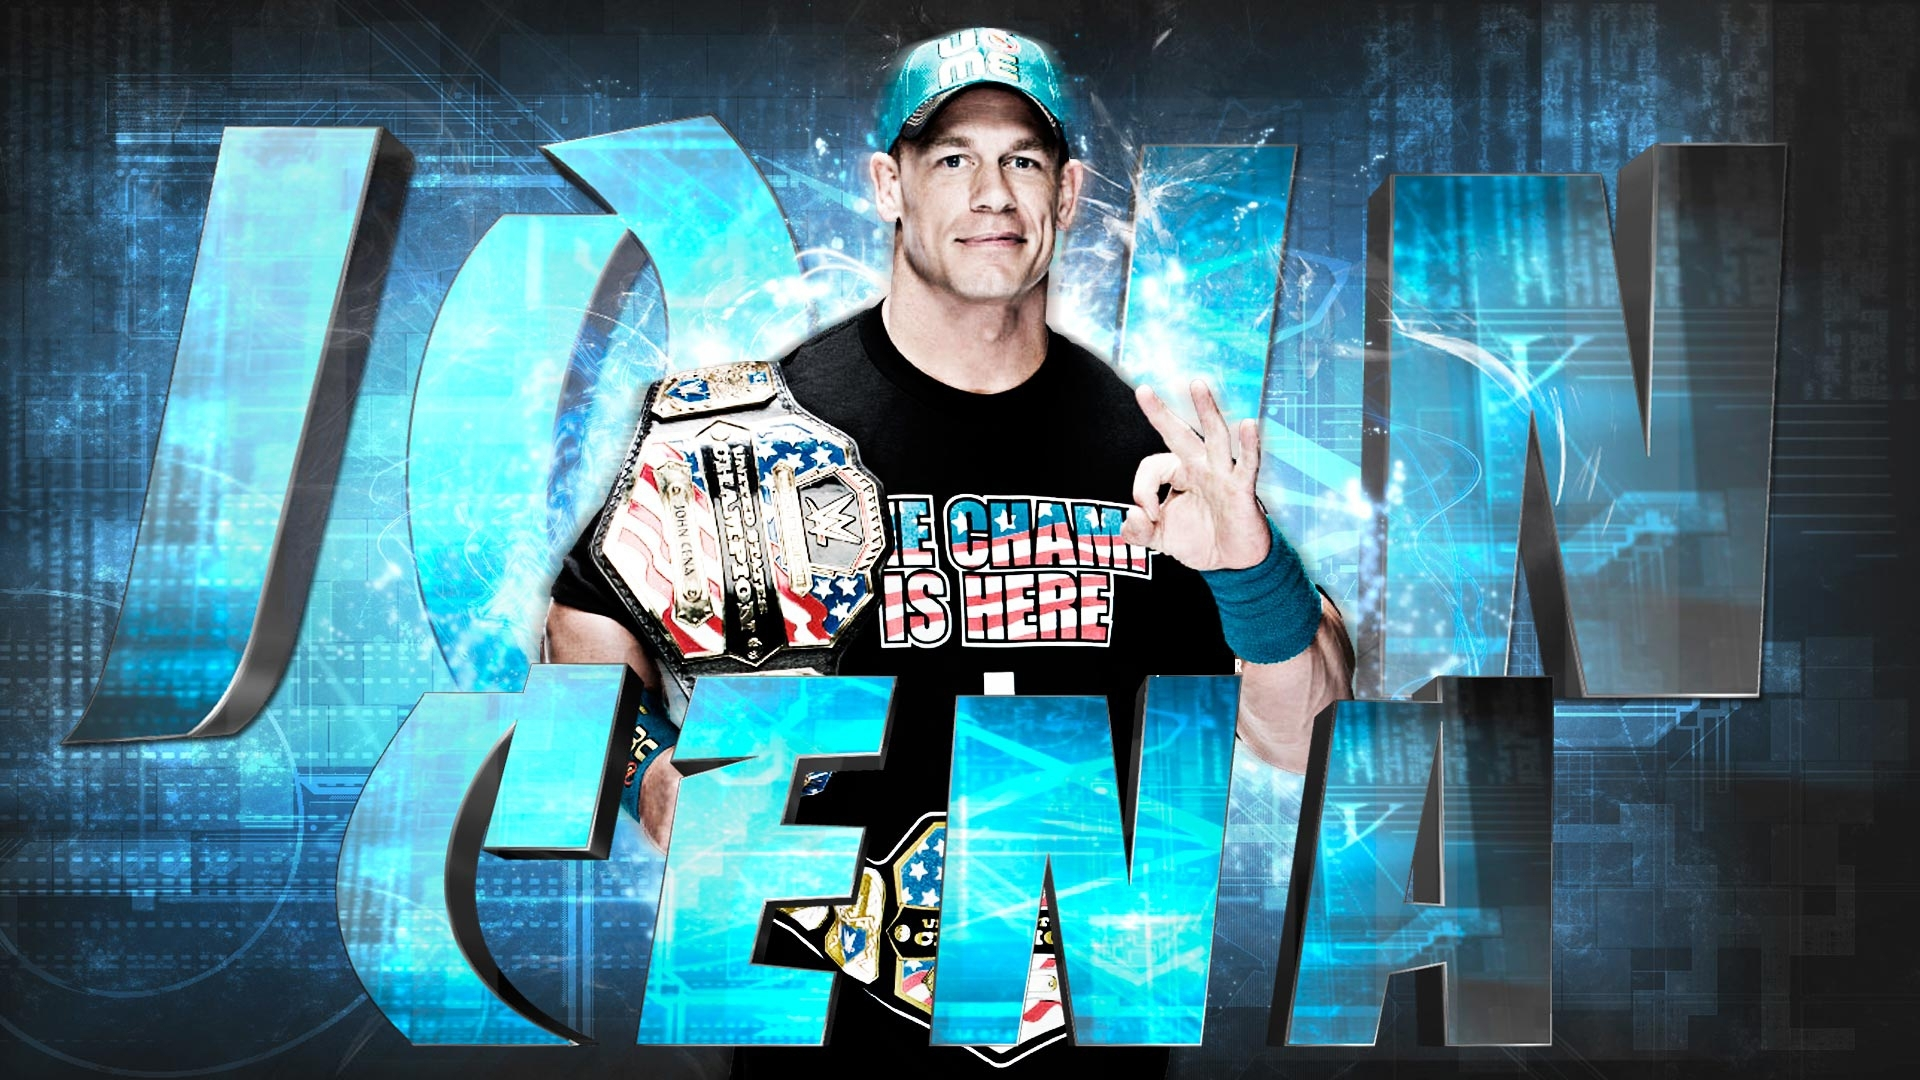 john cena wallpapers hd | pixelstalk